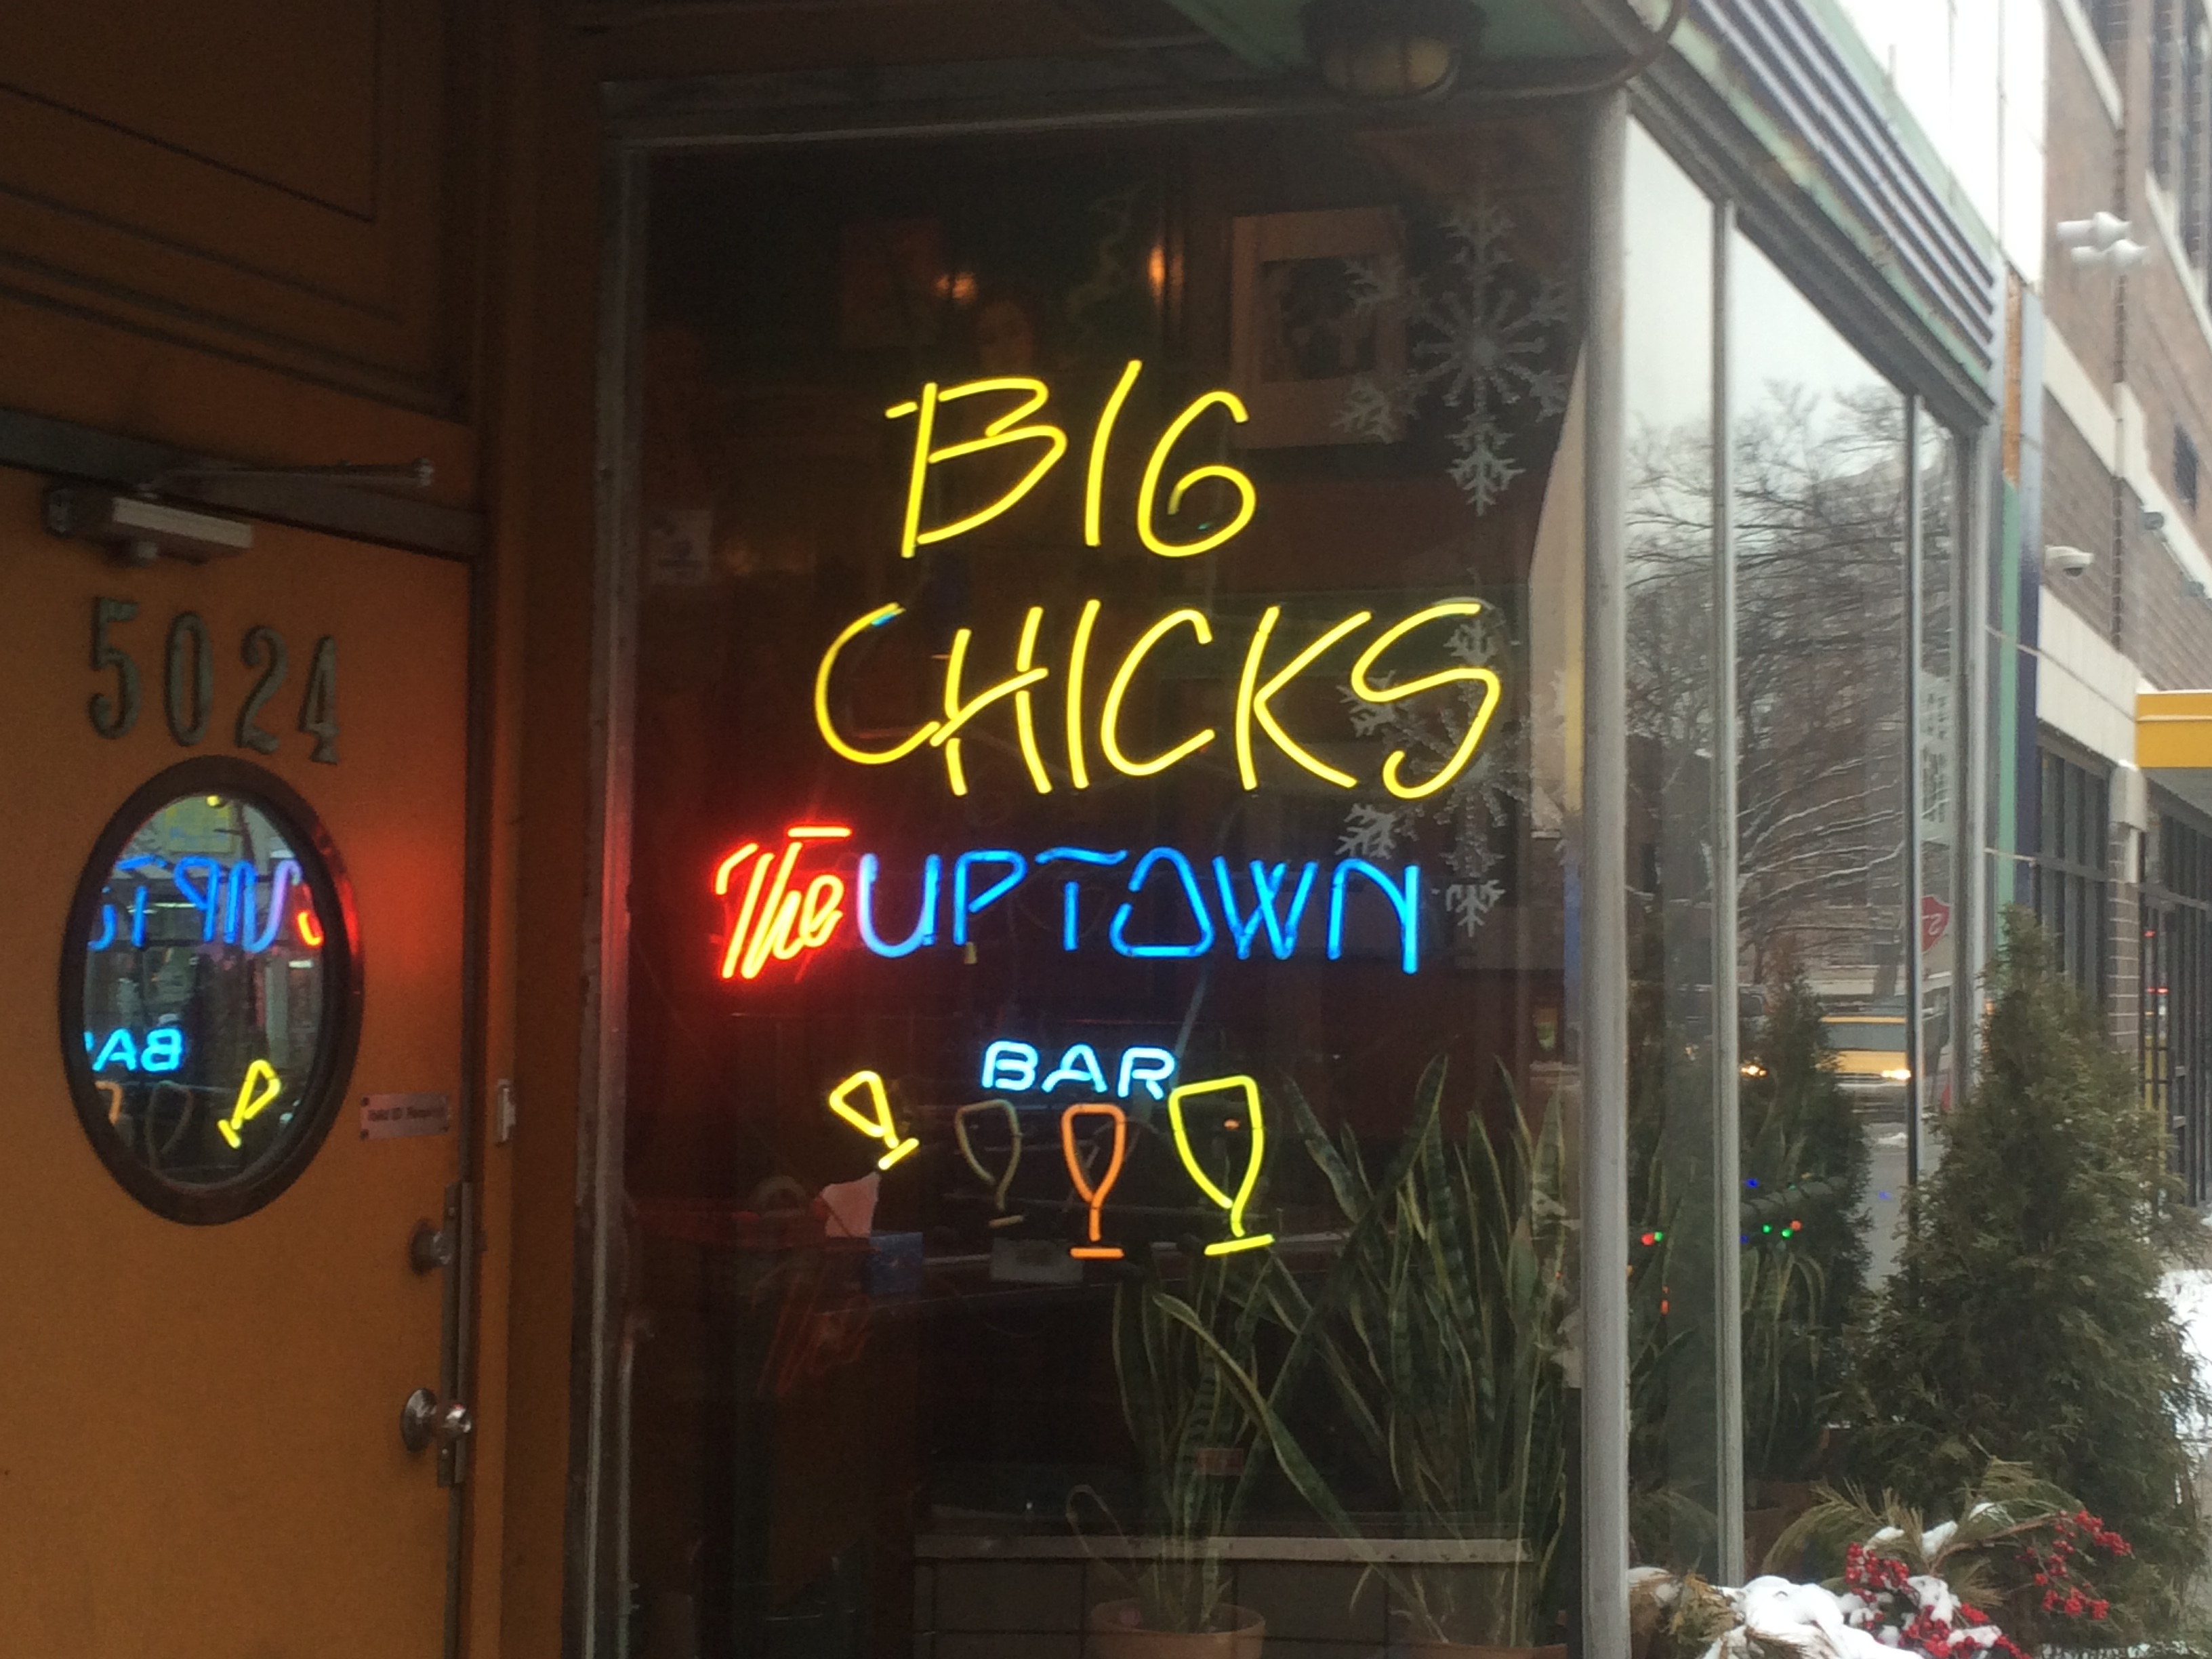 the 10 best bars in uptown, chicago